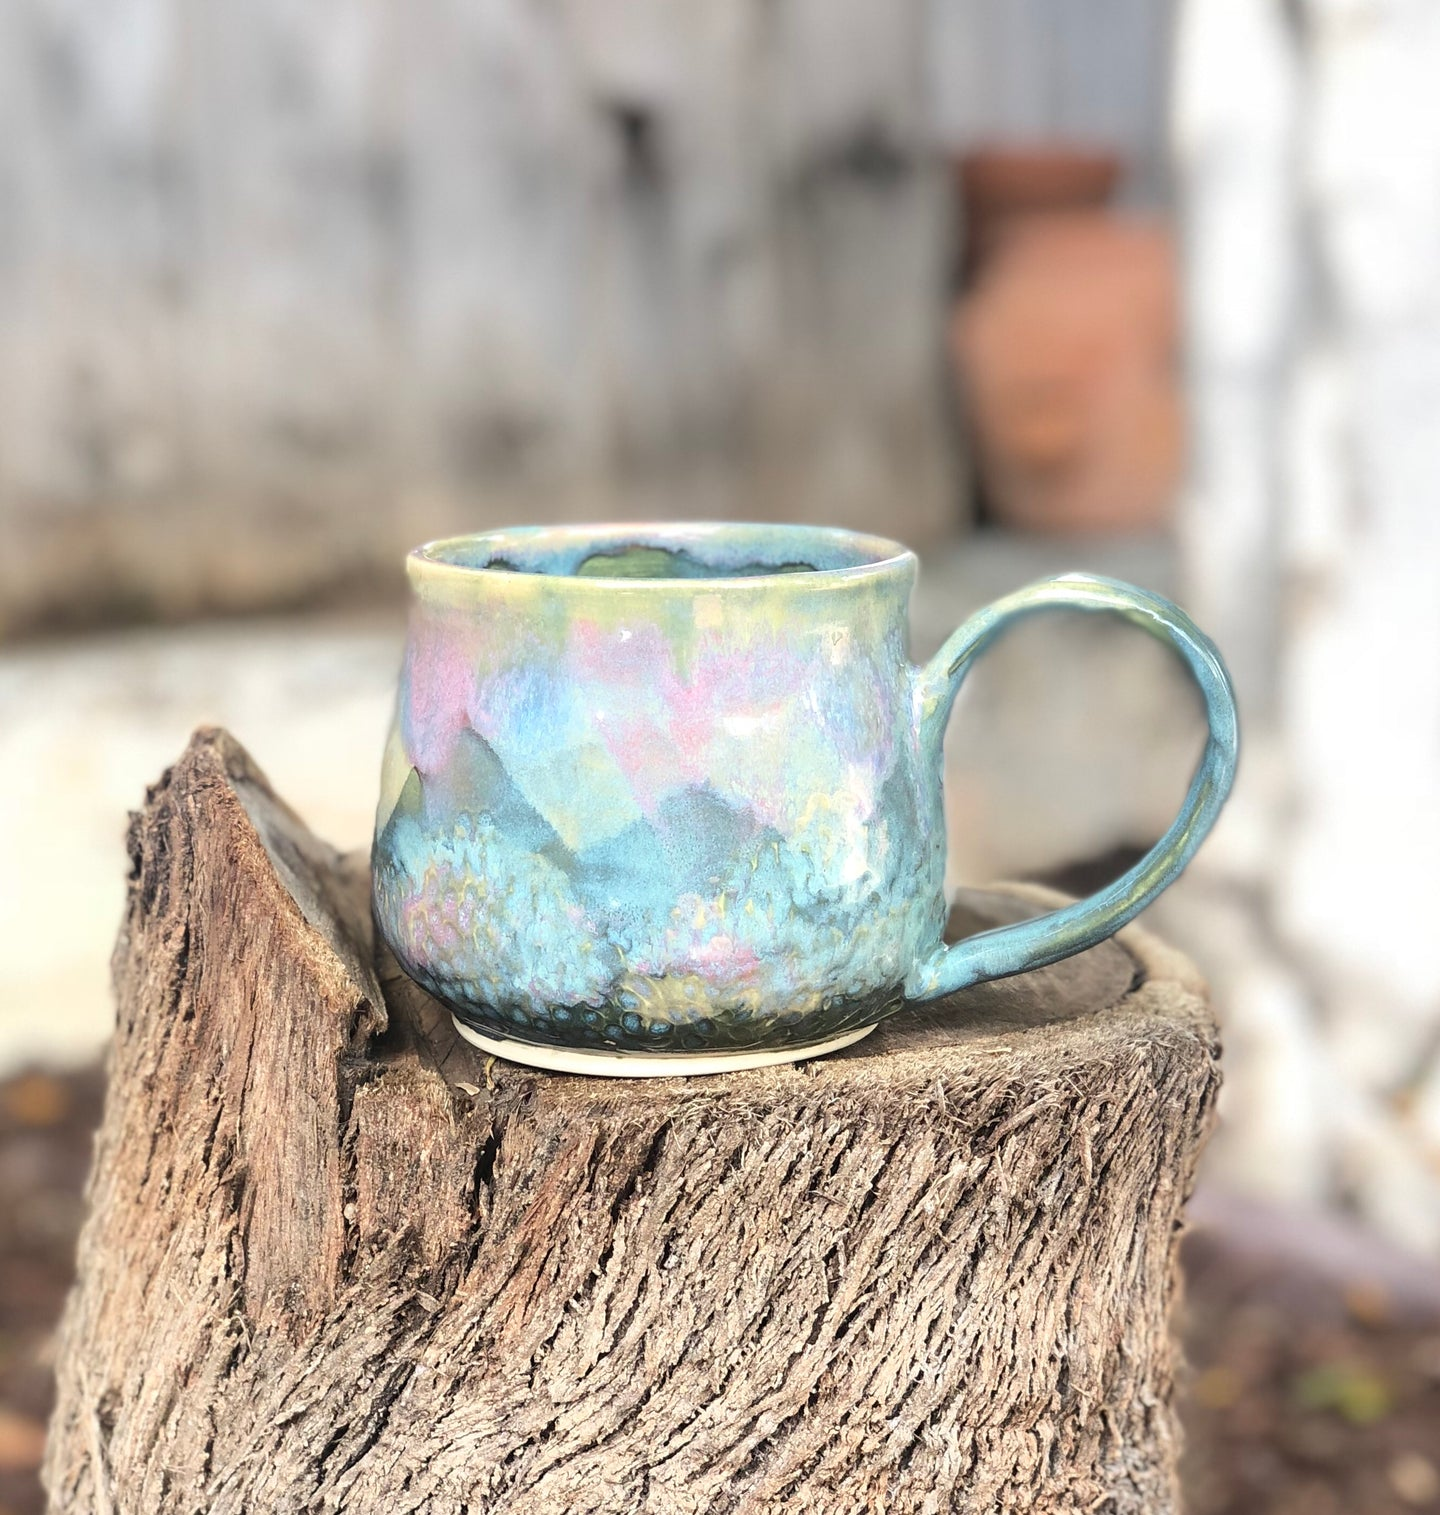 Large Pink Blue Opal Mug - Dreamy Soft Multi Color Ceramic Mug 20 oz - Hsiaowan Studios Handmade Ceramics Pottery